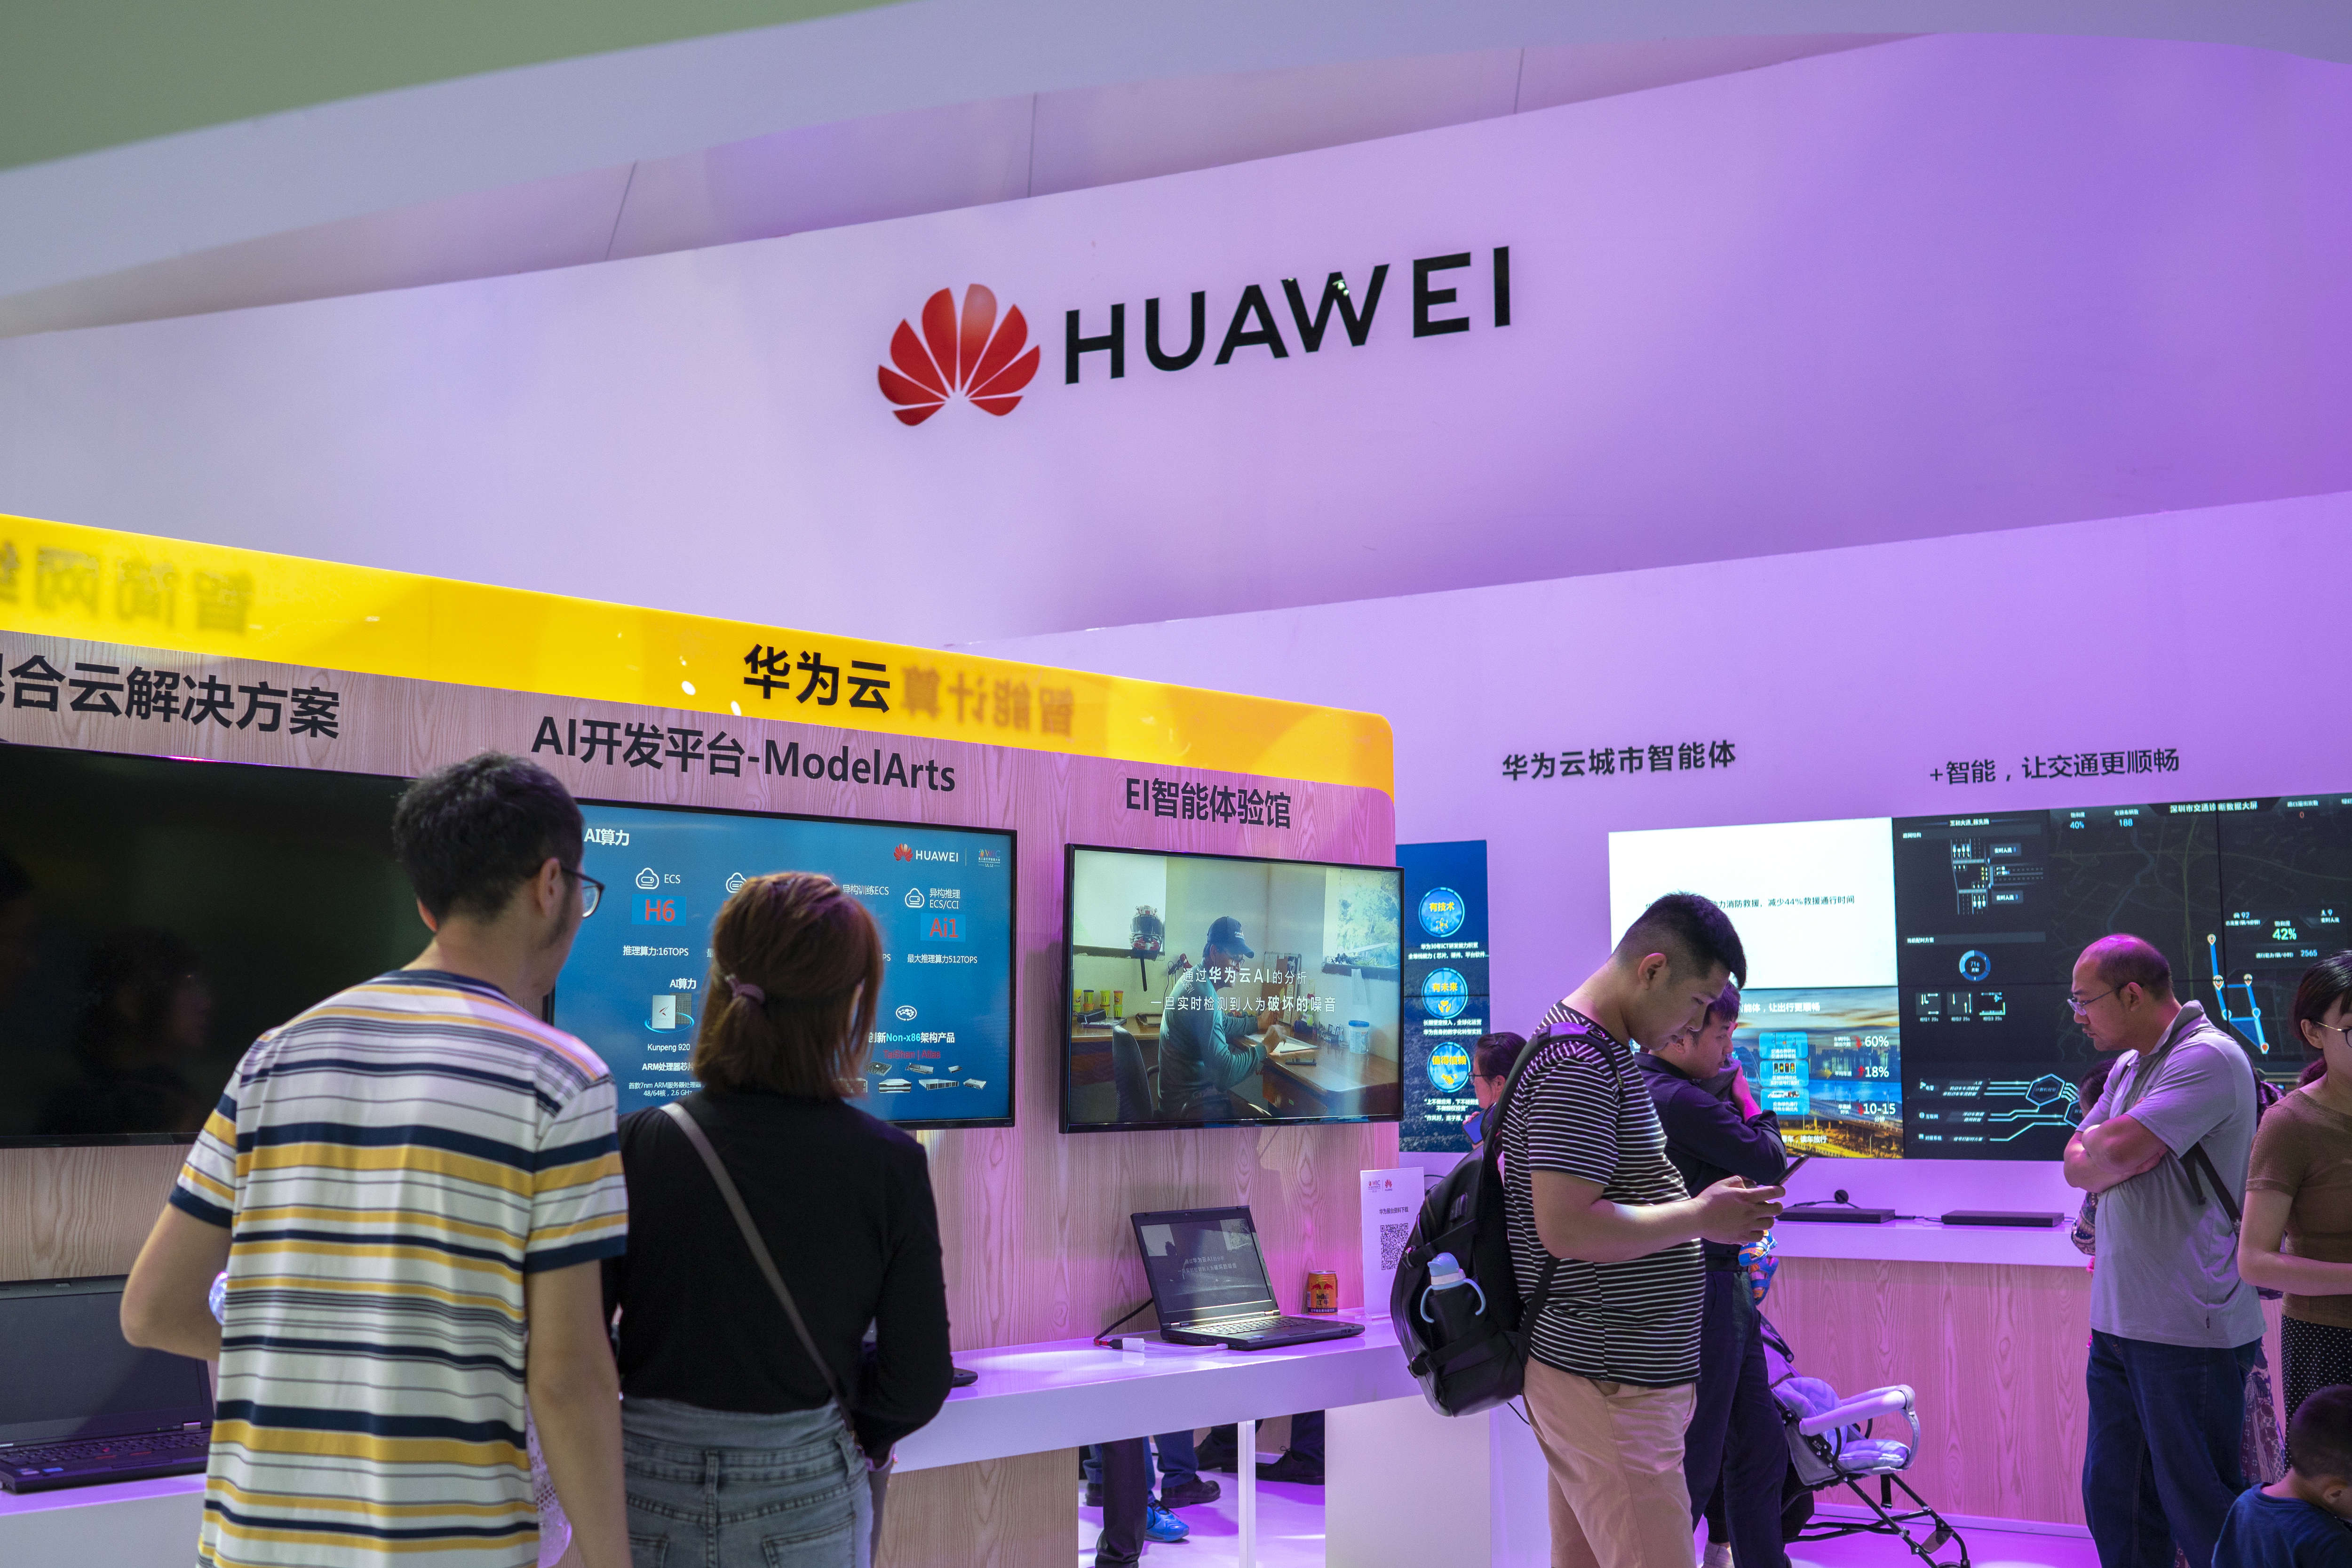 Huaweis exhibition booth.  Huawei is the leading